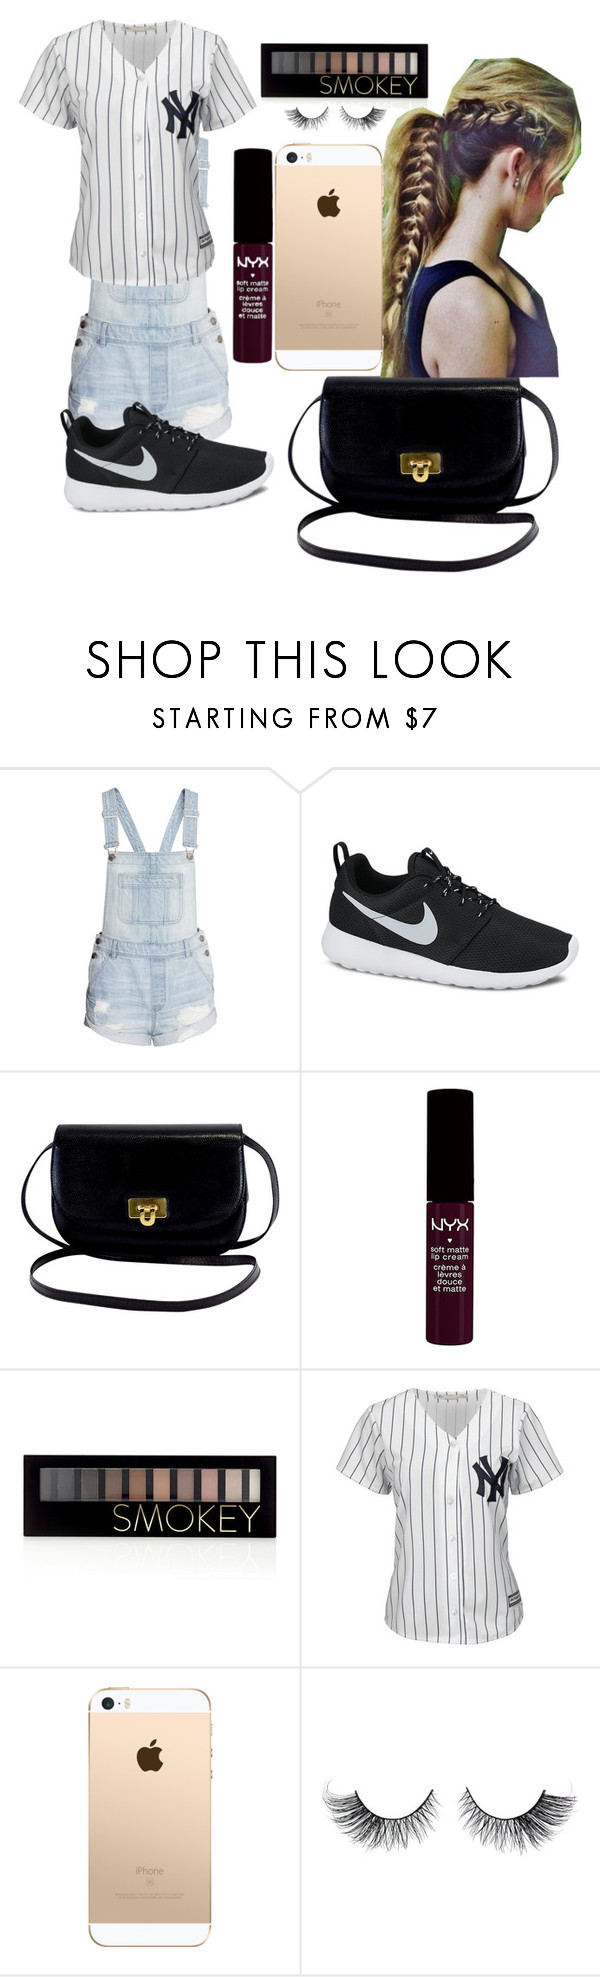 """Big Rings - Future"" by qveennoprincess ❤ liked on Polyvore featuring NIKE, NYX, Forever 21 and Majestic"